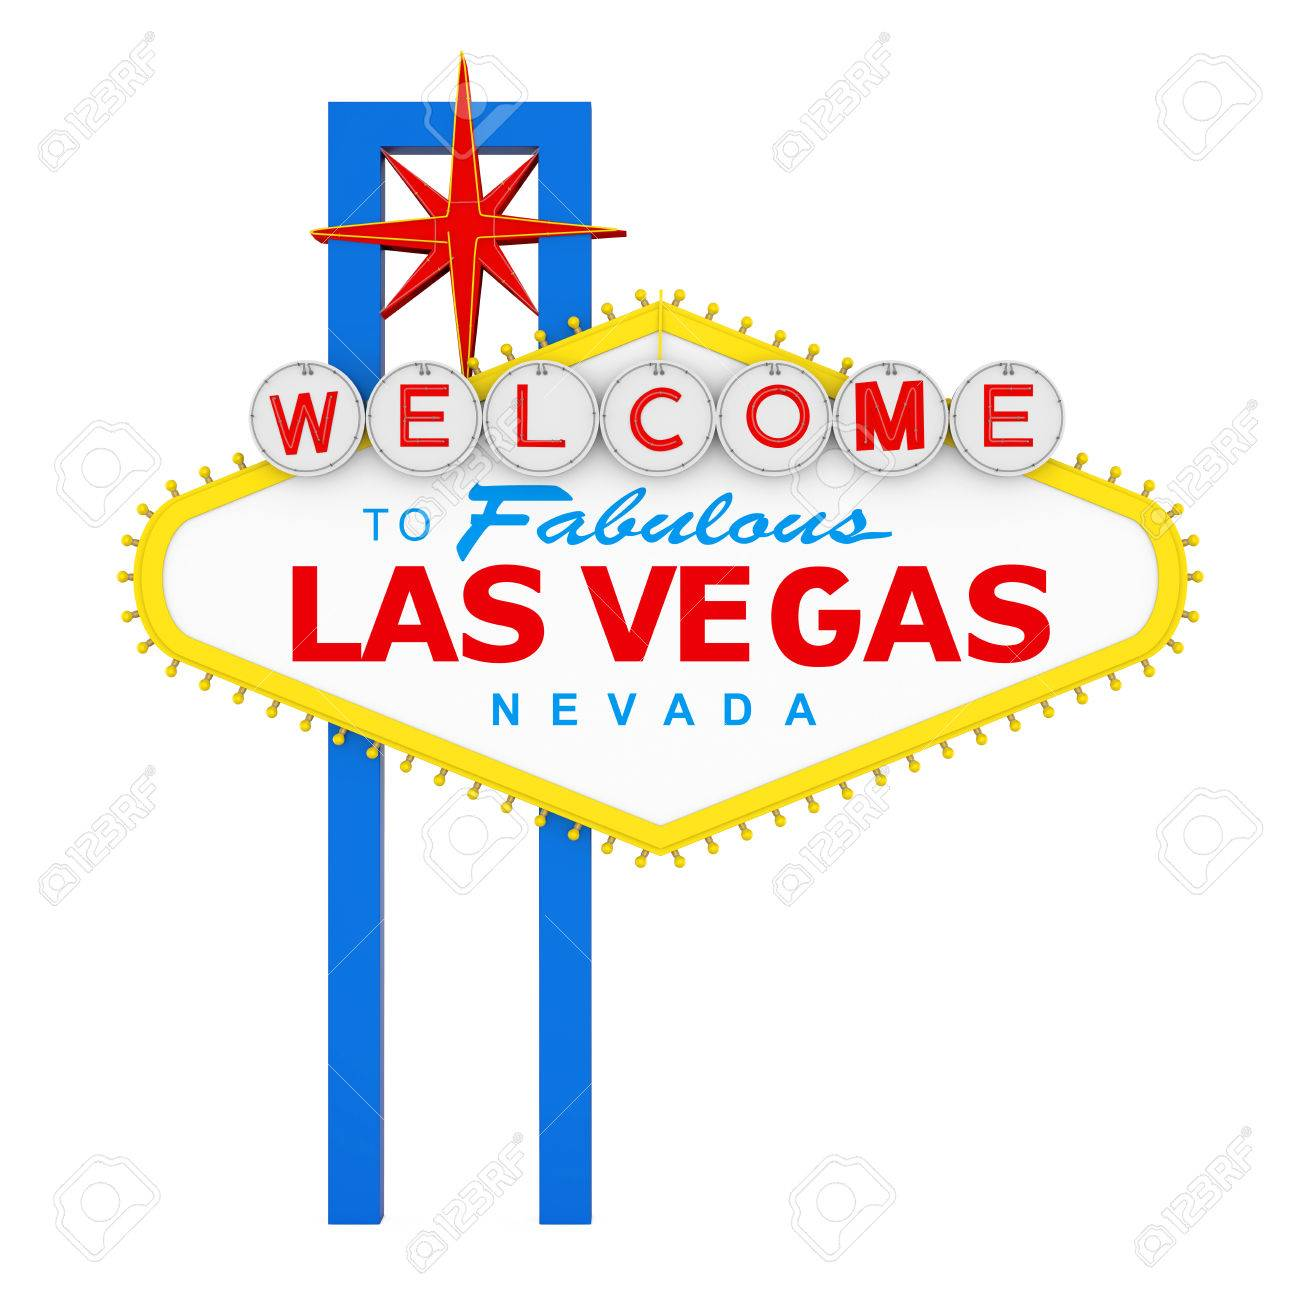 Welcome to Fabulous Las Vegas Sign Isolated - 85086827